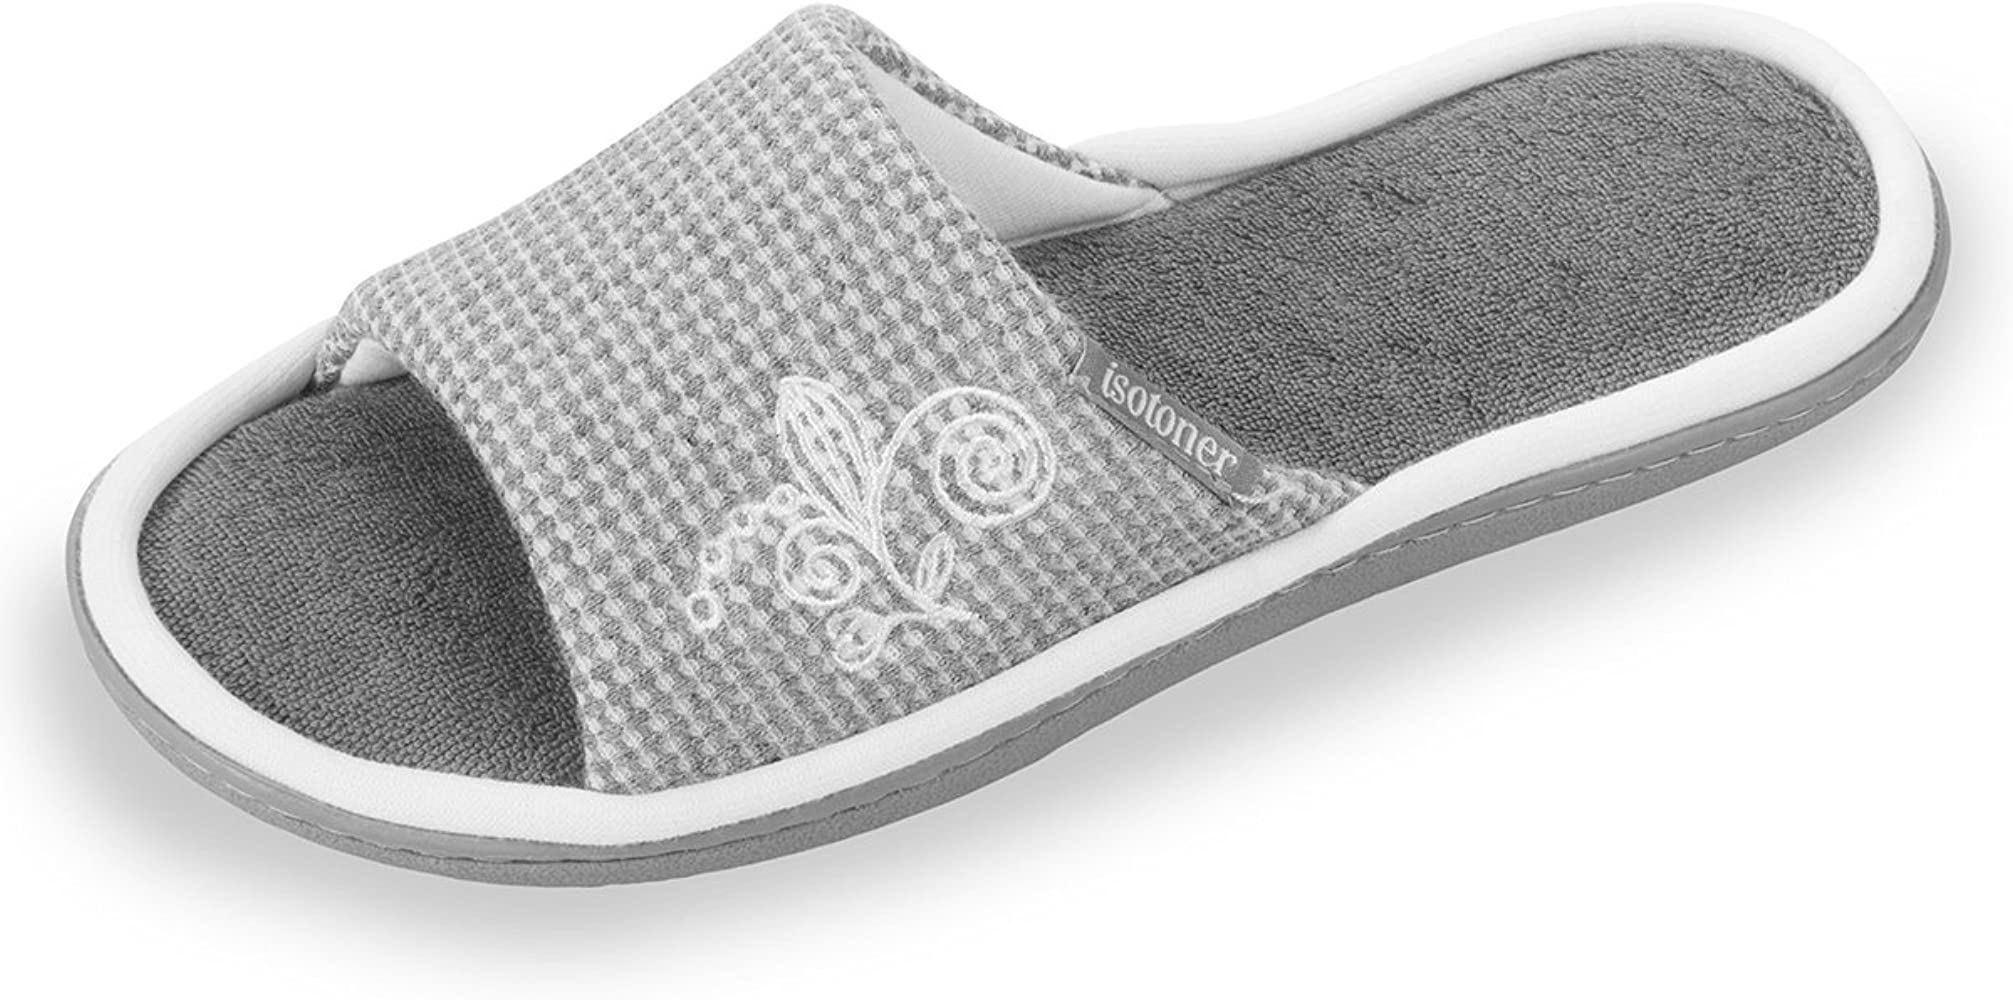 Femme Nid Sandales D'abeille Chaussons Coton f7y6Ygvb